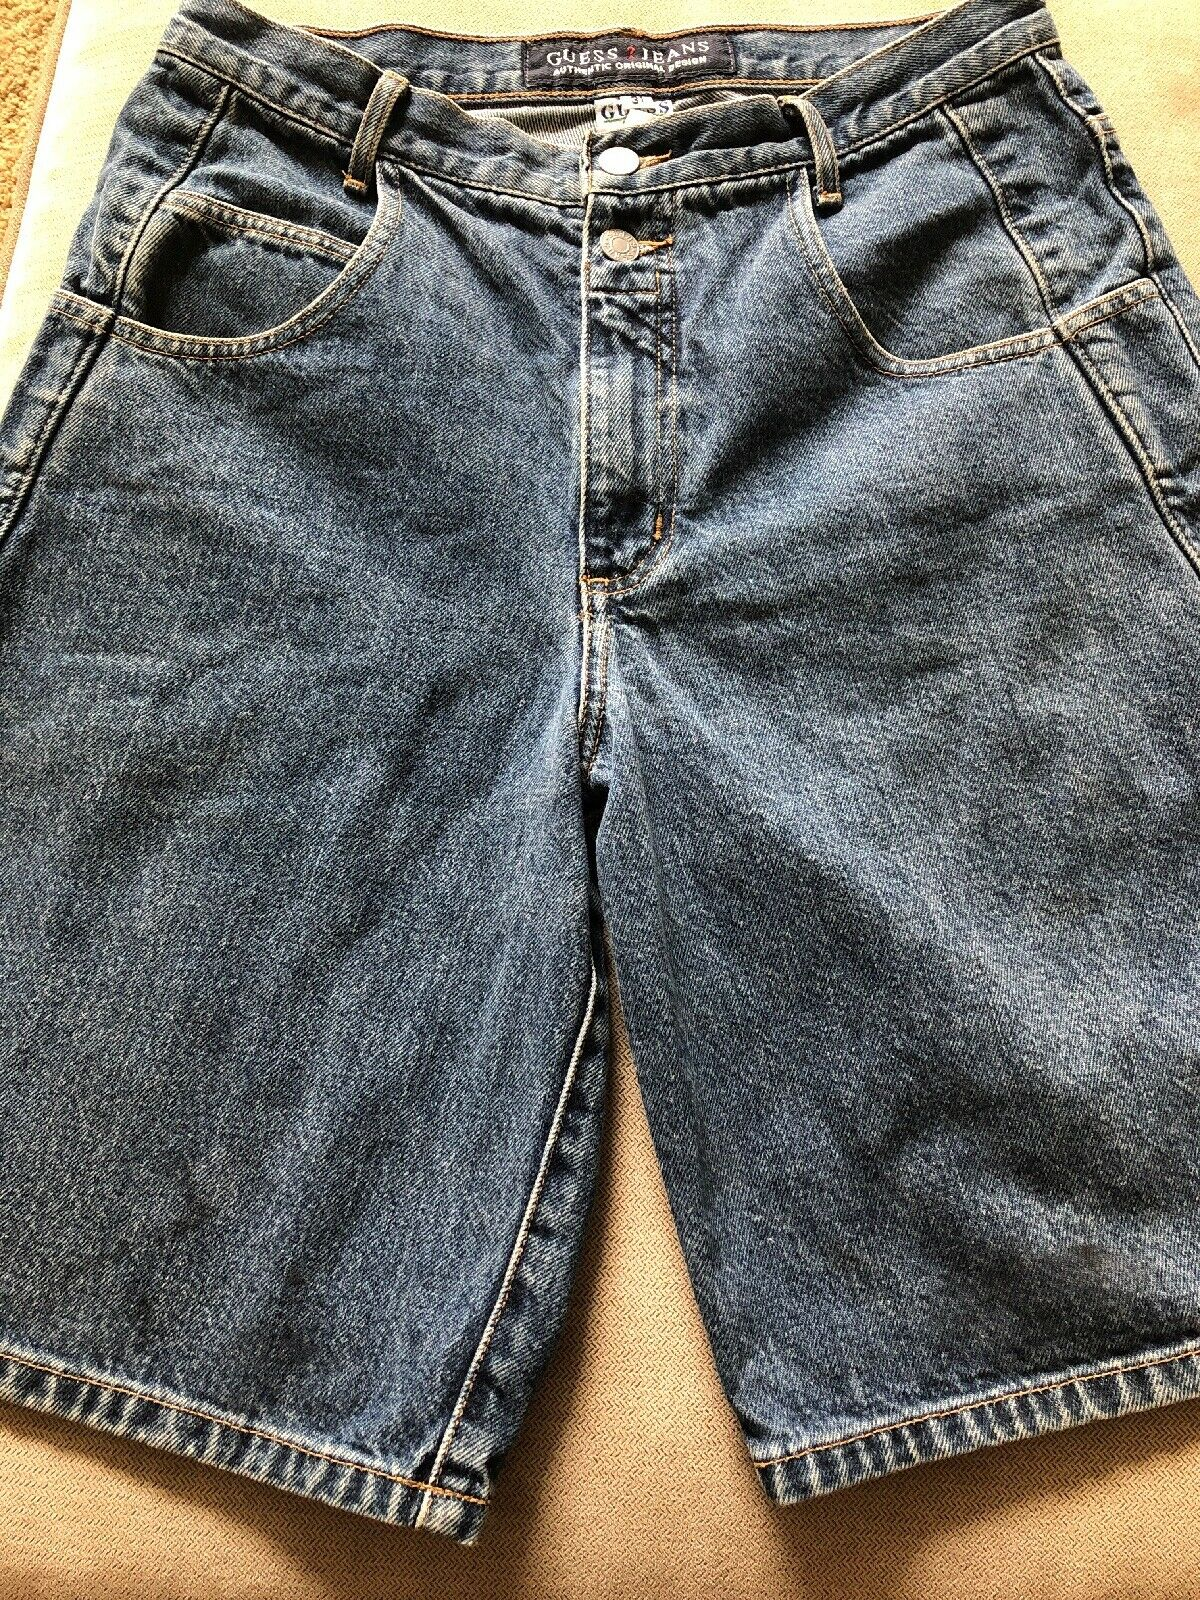 Vintage Men's Guess Denim Jean Shorts Size 31 2 Button Front